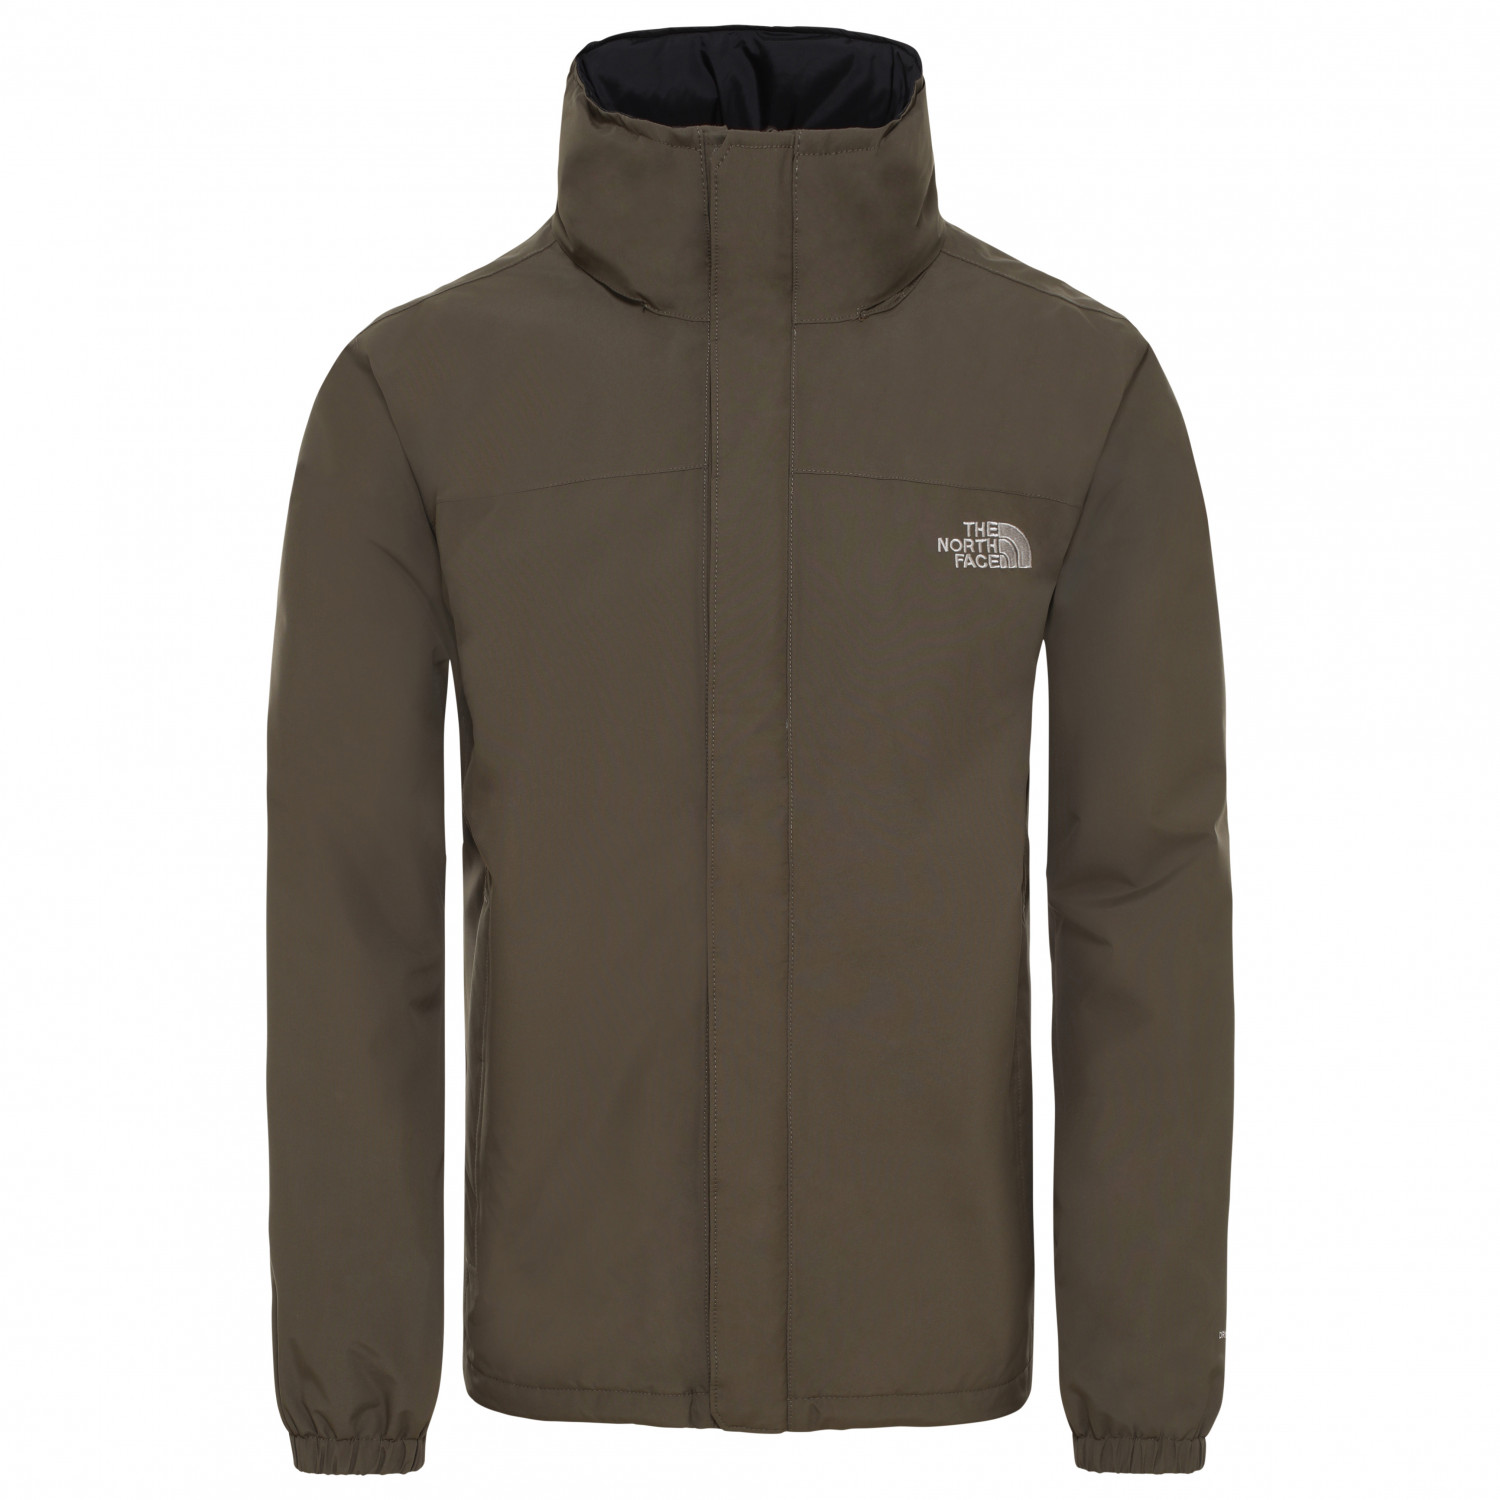 selezione migliore f9ed1 5b00f The North Face - Resolve Insulated Jacket - Giacca invernale - New Taupe  Green | M